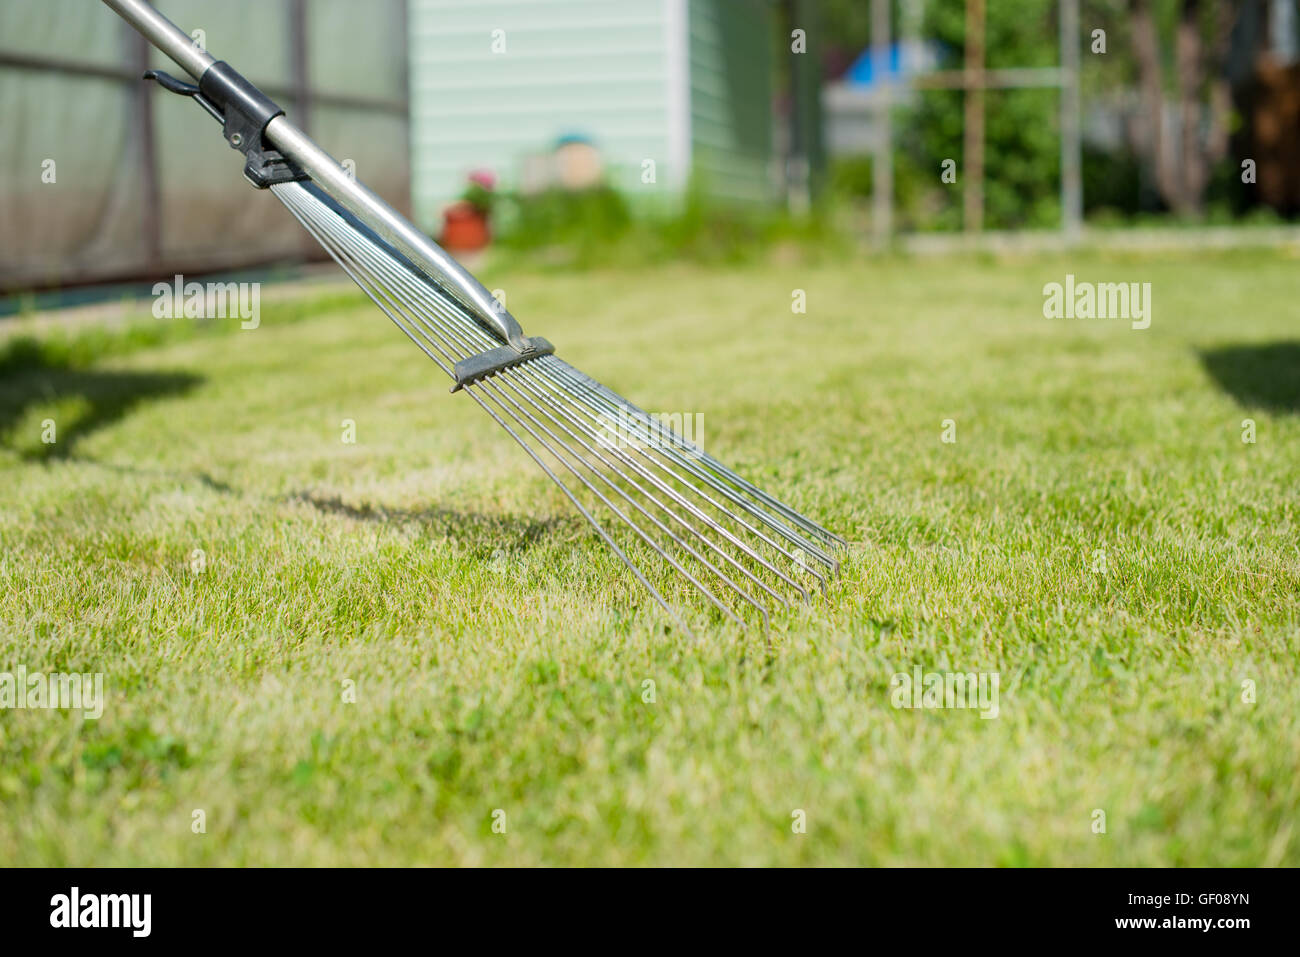 On the green lawn rake collect grass clippings - Stock Image